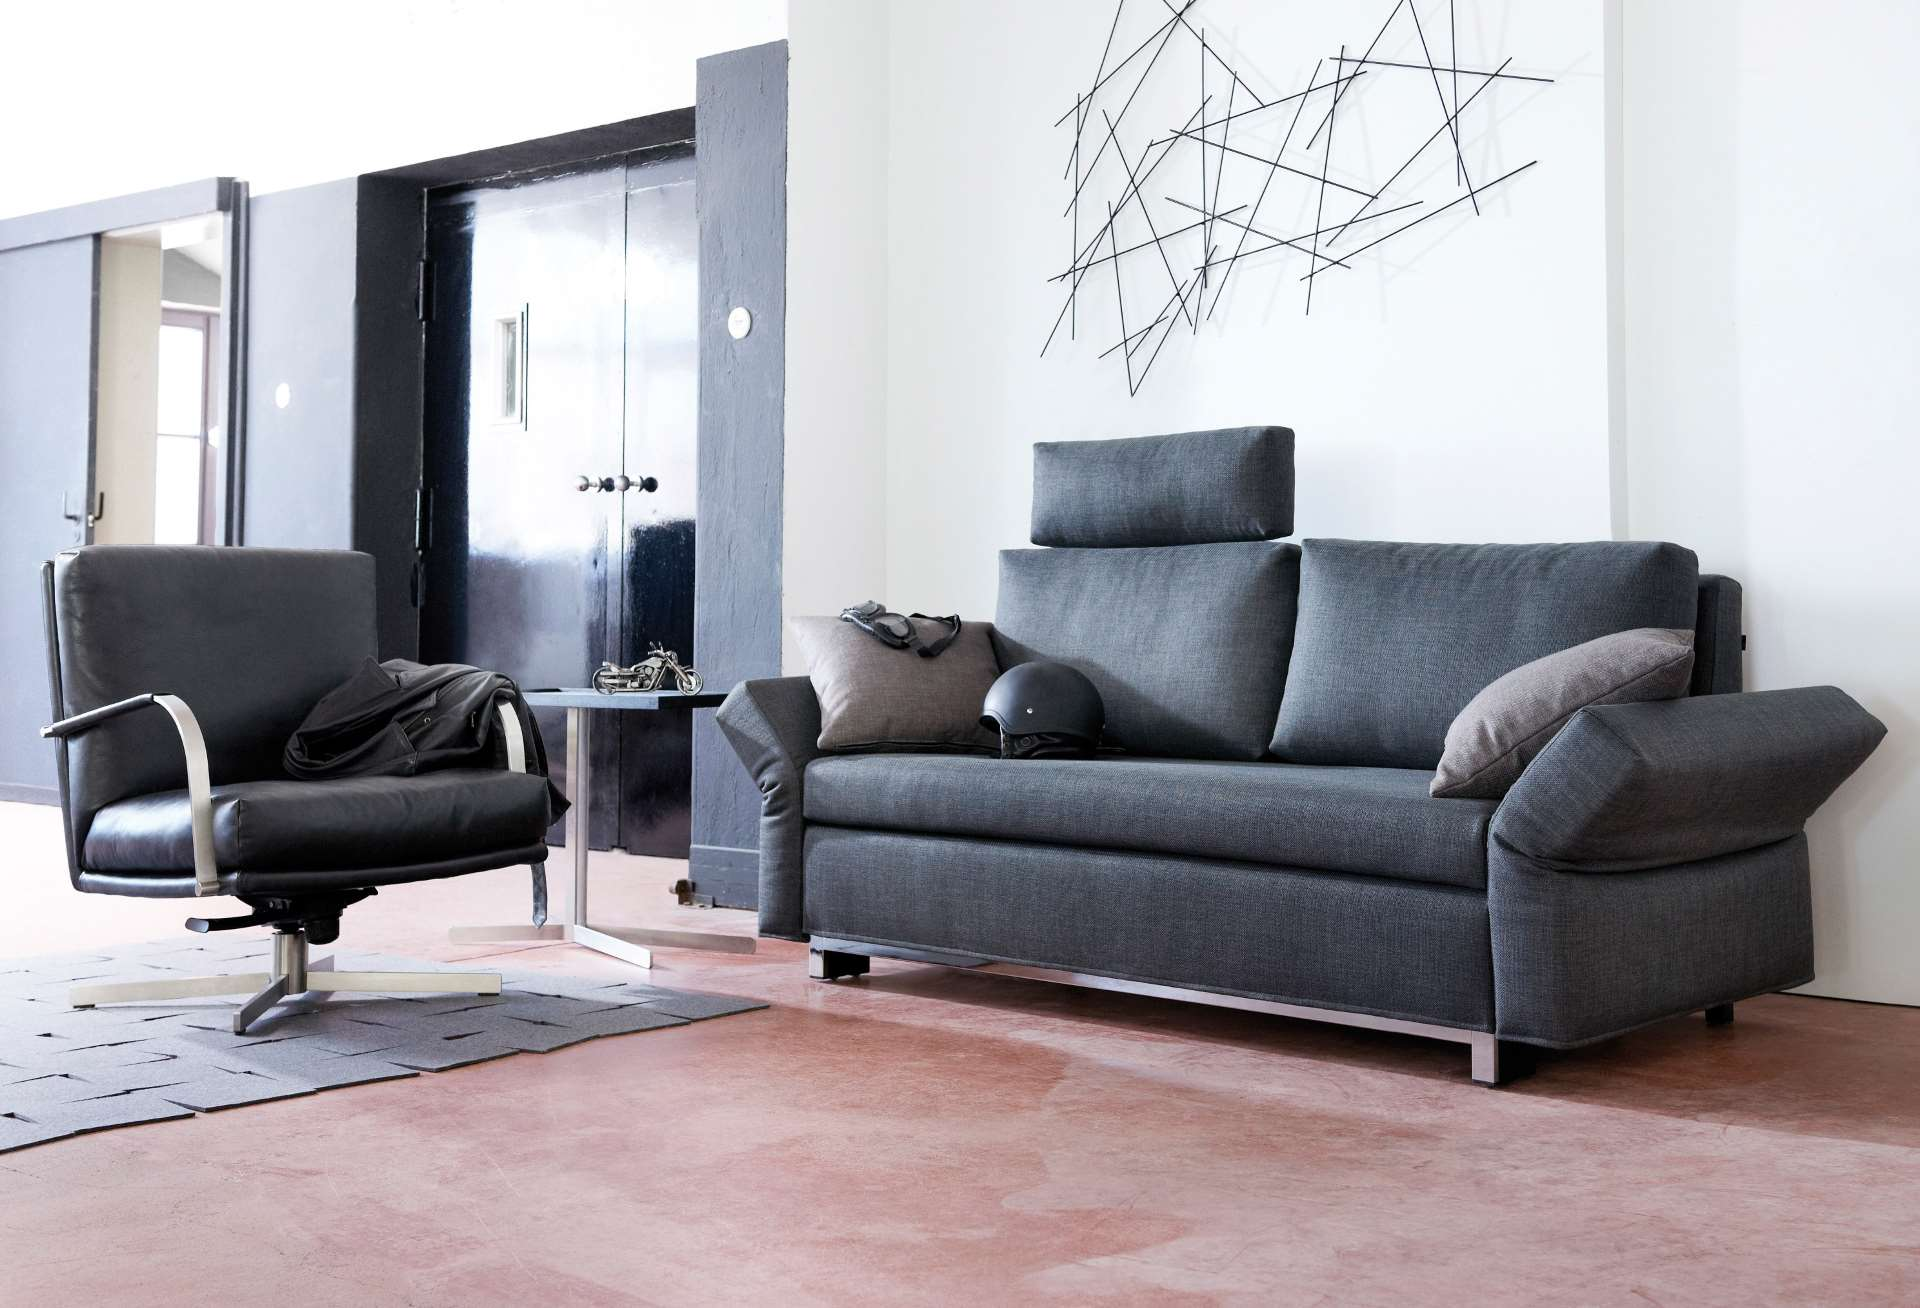 Design Schlafsofas Design Schlafsofa Moritz Wohnopposition Berlin